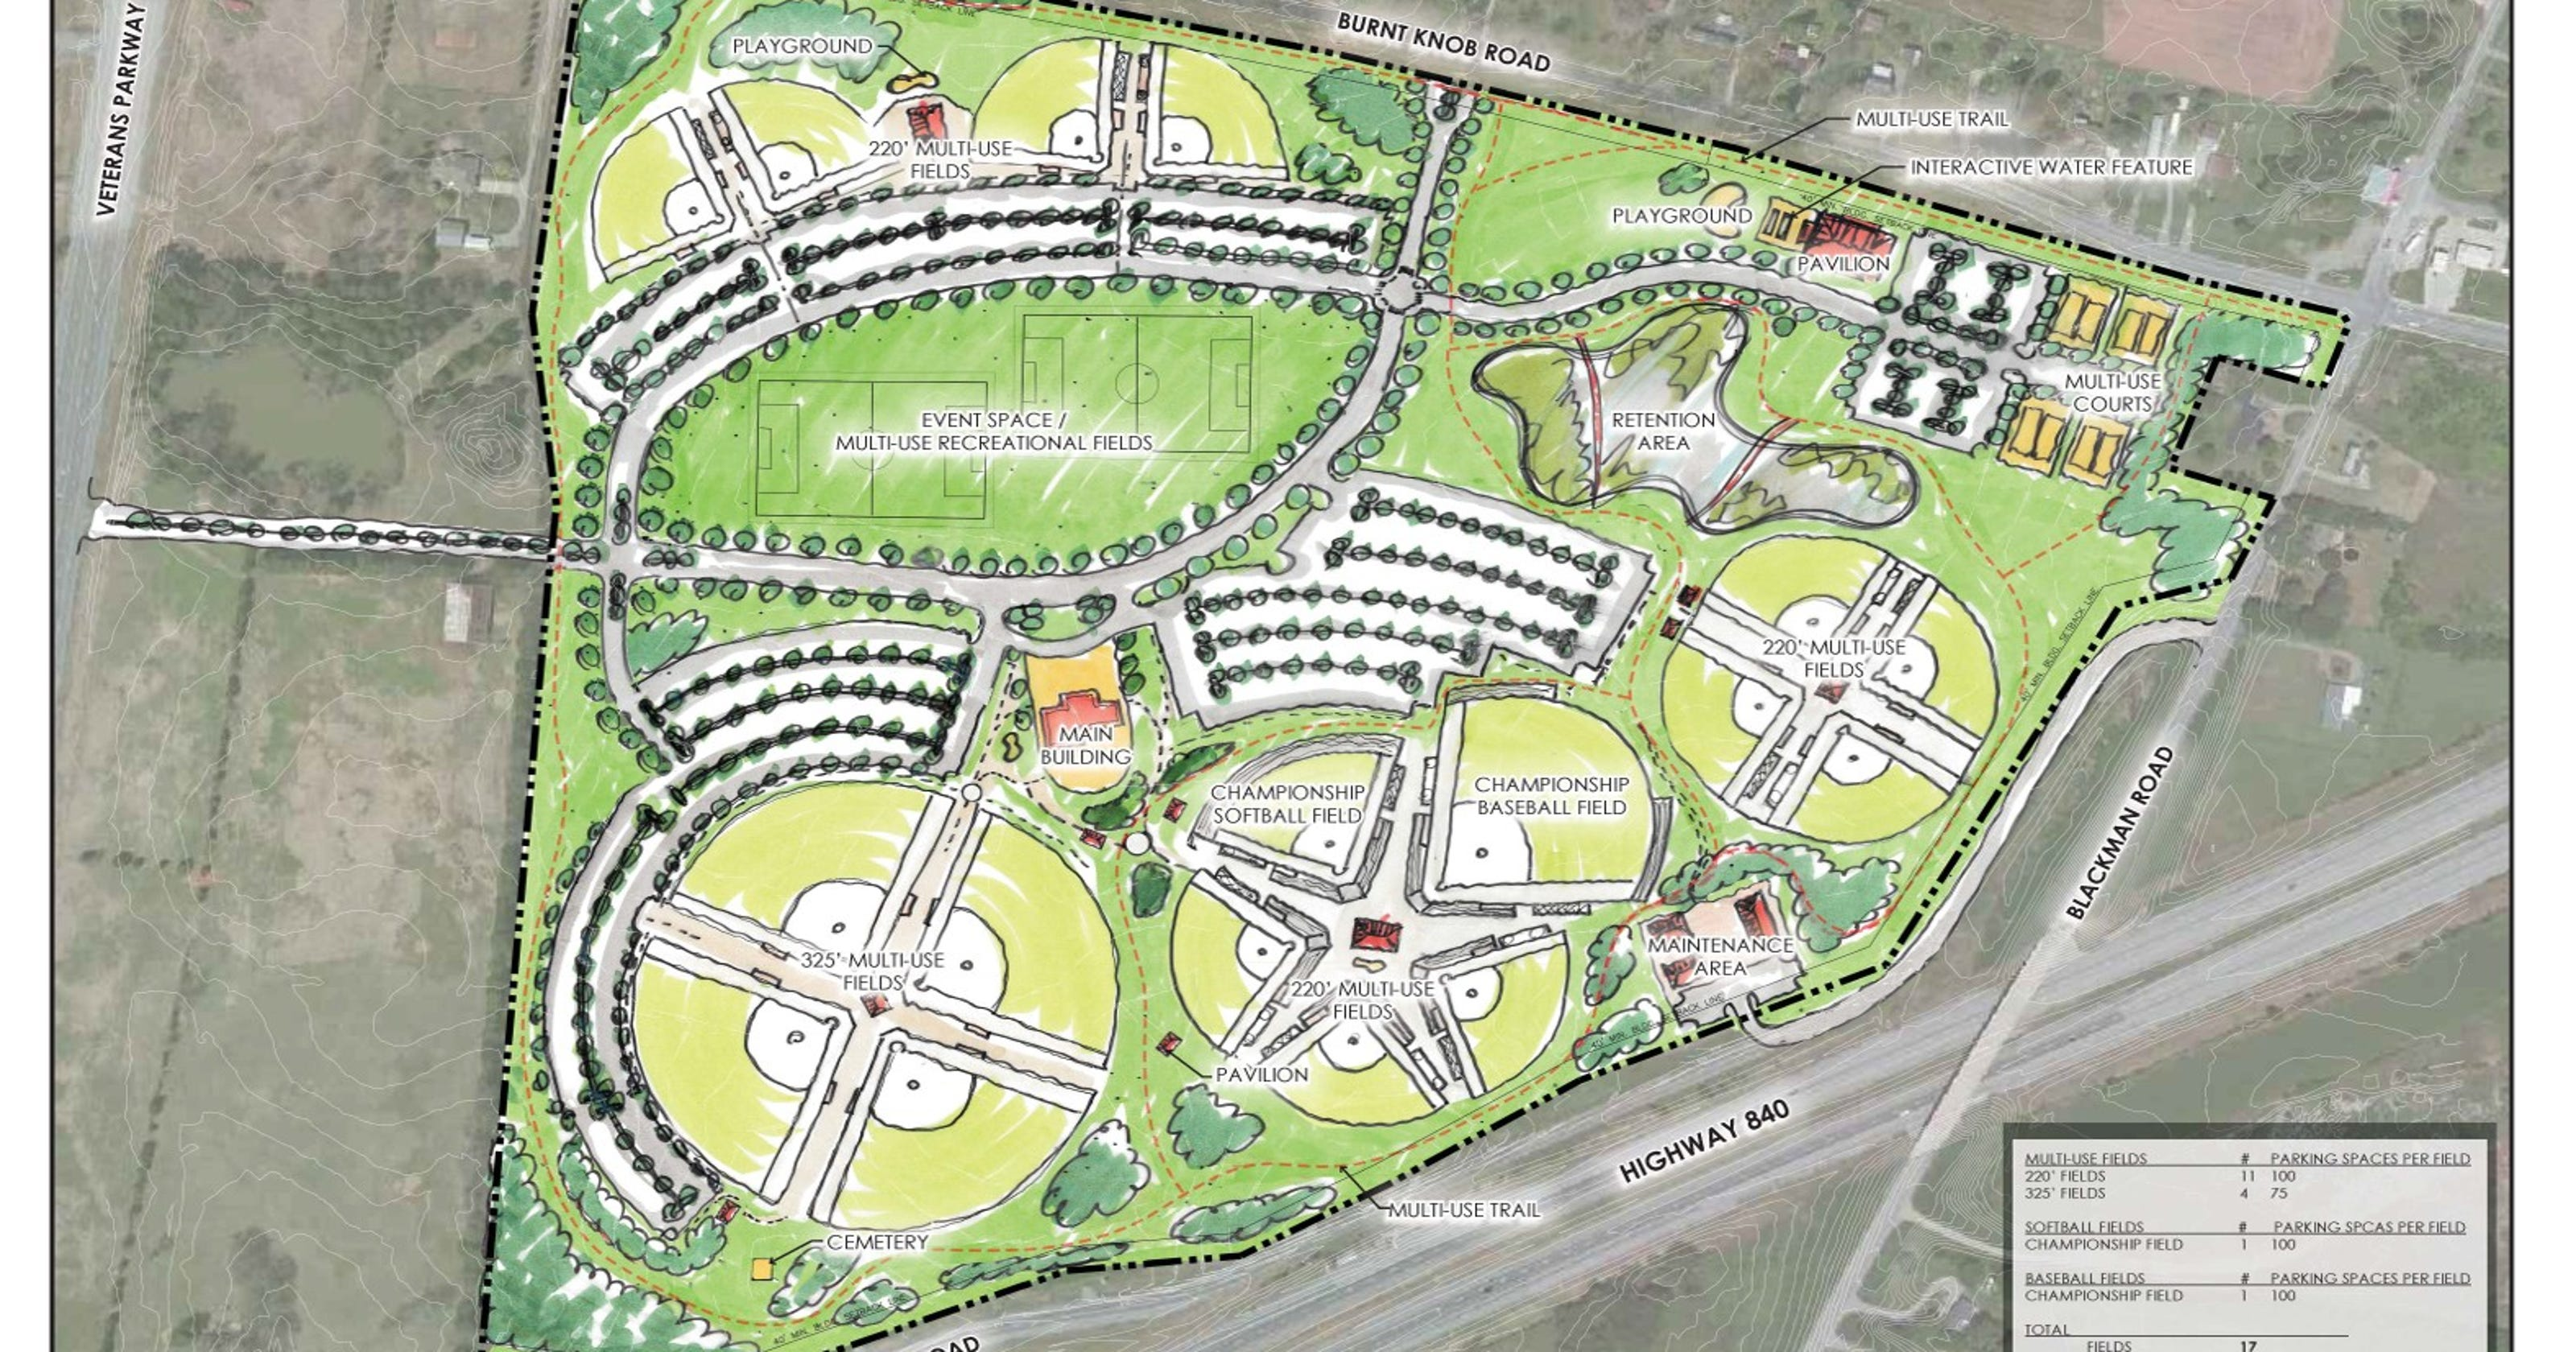 City presented 3 options for west park design malvernweather Choice Image